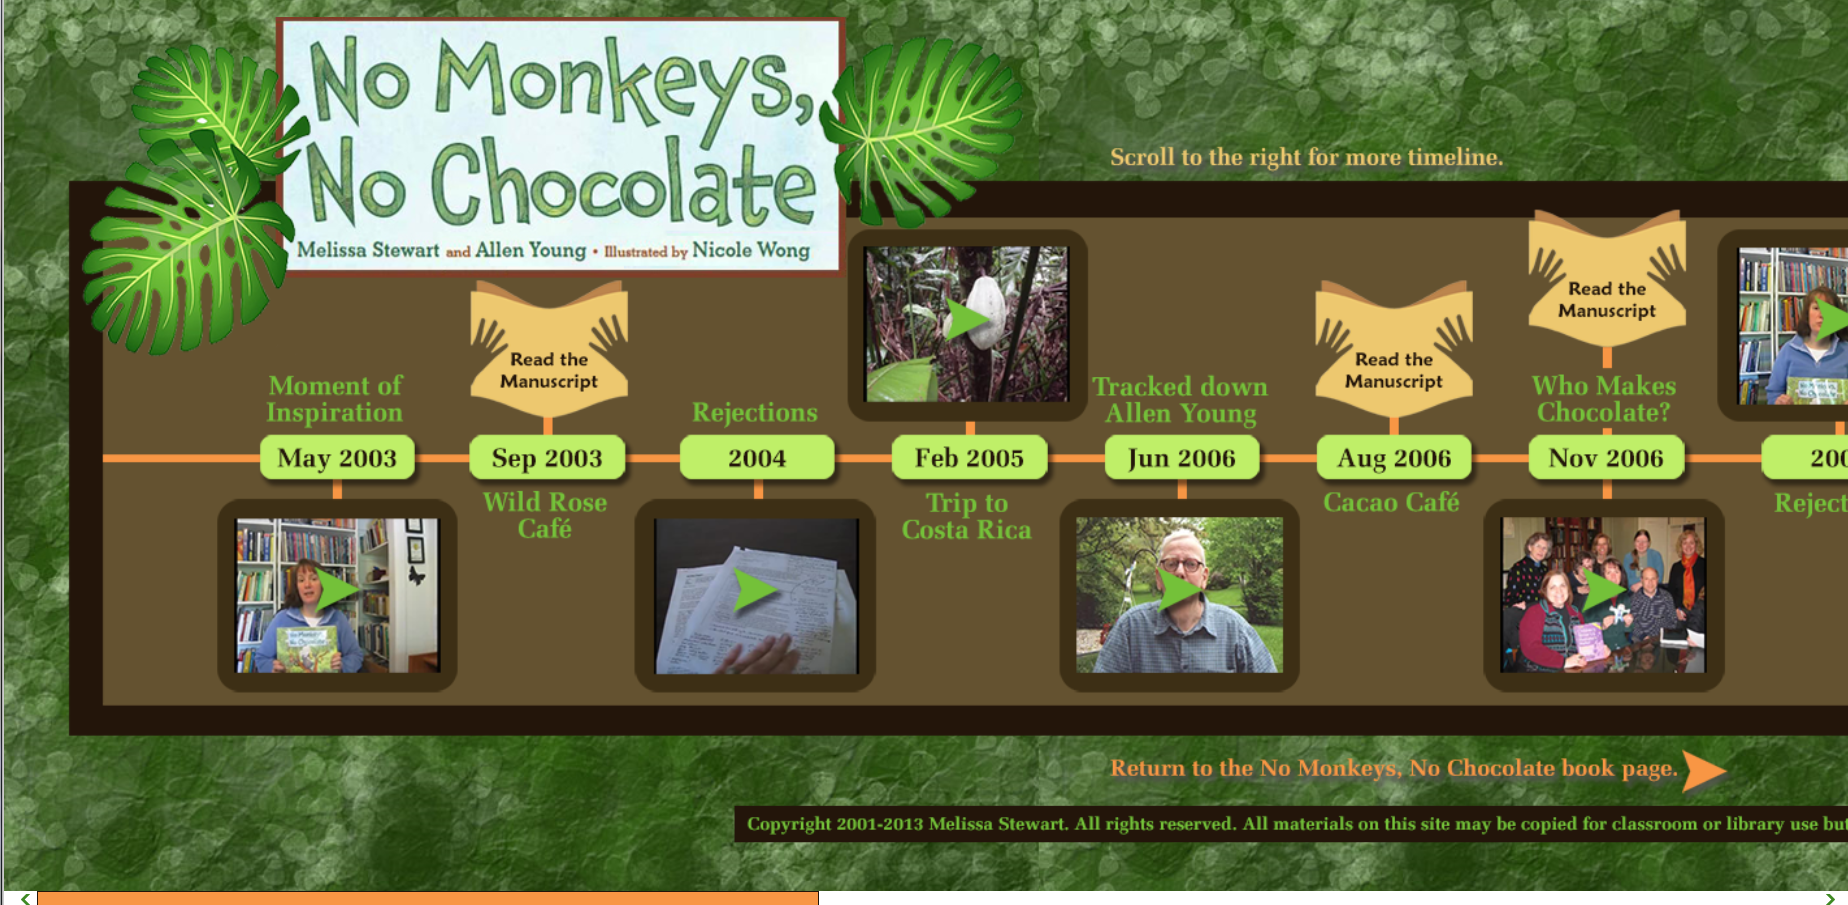 This revision timeline describes the 10-year process of making of No Monkeys, No Chocolate--from inspiration to publication: http://www.melissa-stewart.com/timeline/10yr_timeline.html